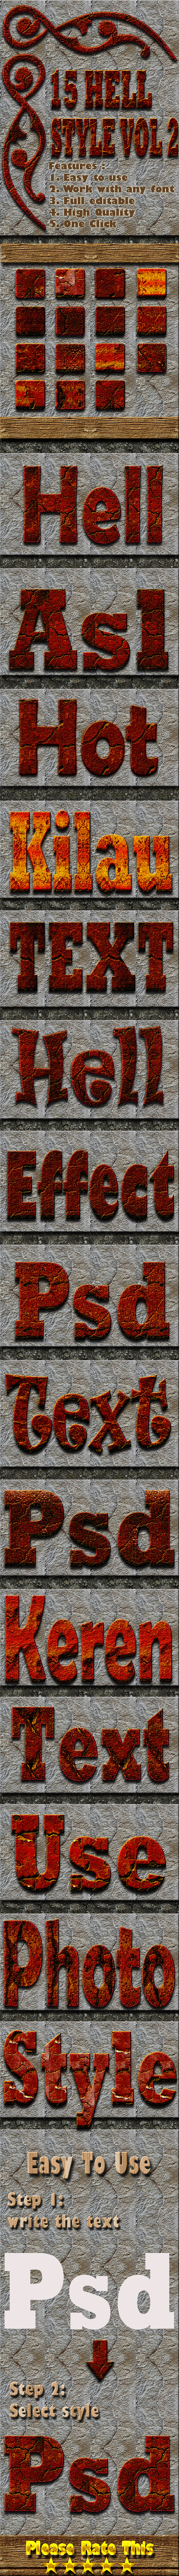 15 Hell Text Effect Style Vol 2 - Text Effects Styles